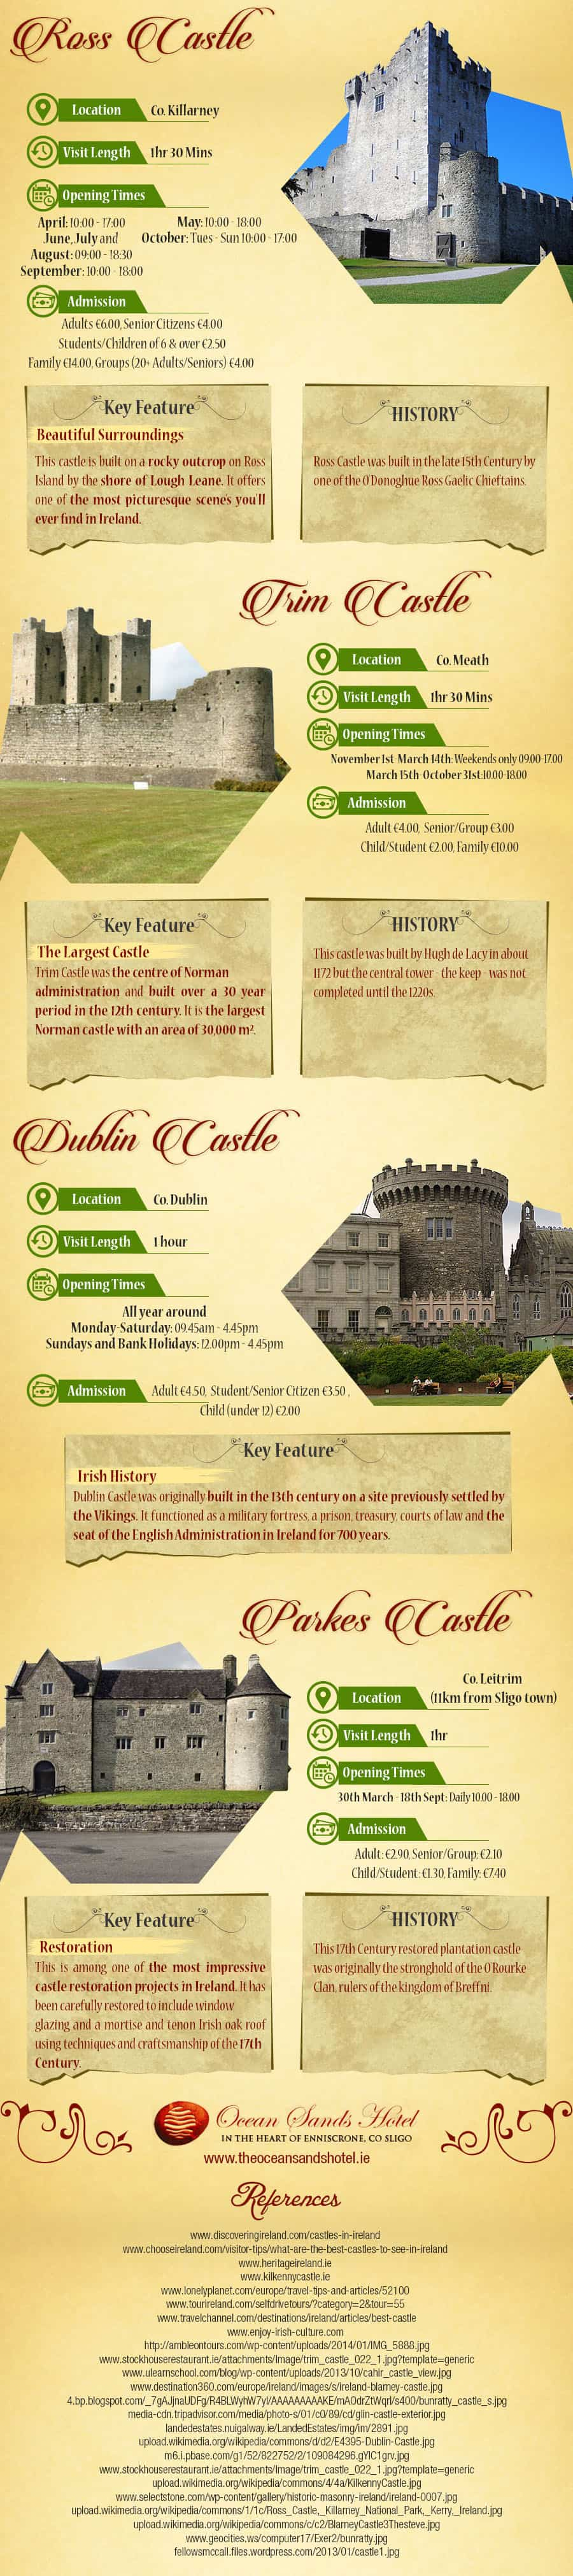 Castles to See in Ireland